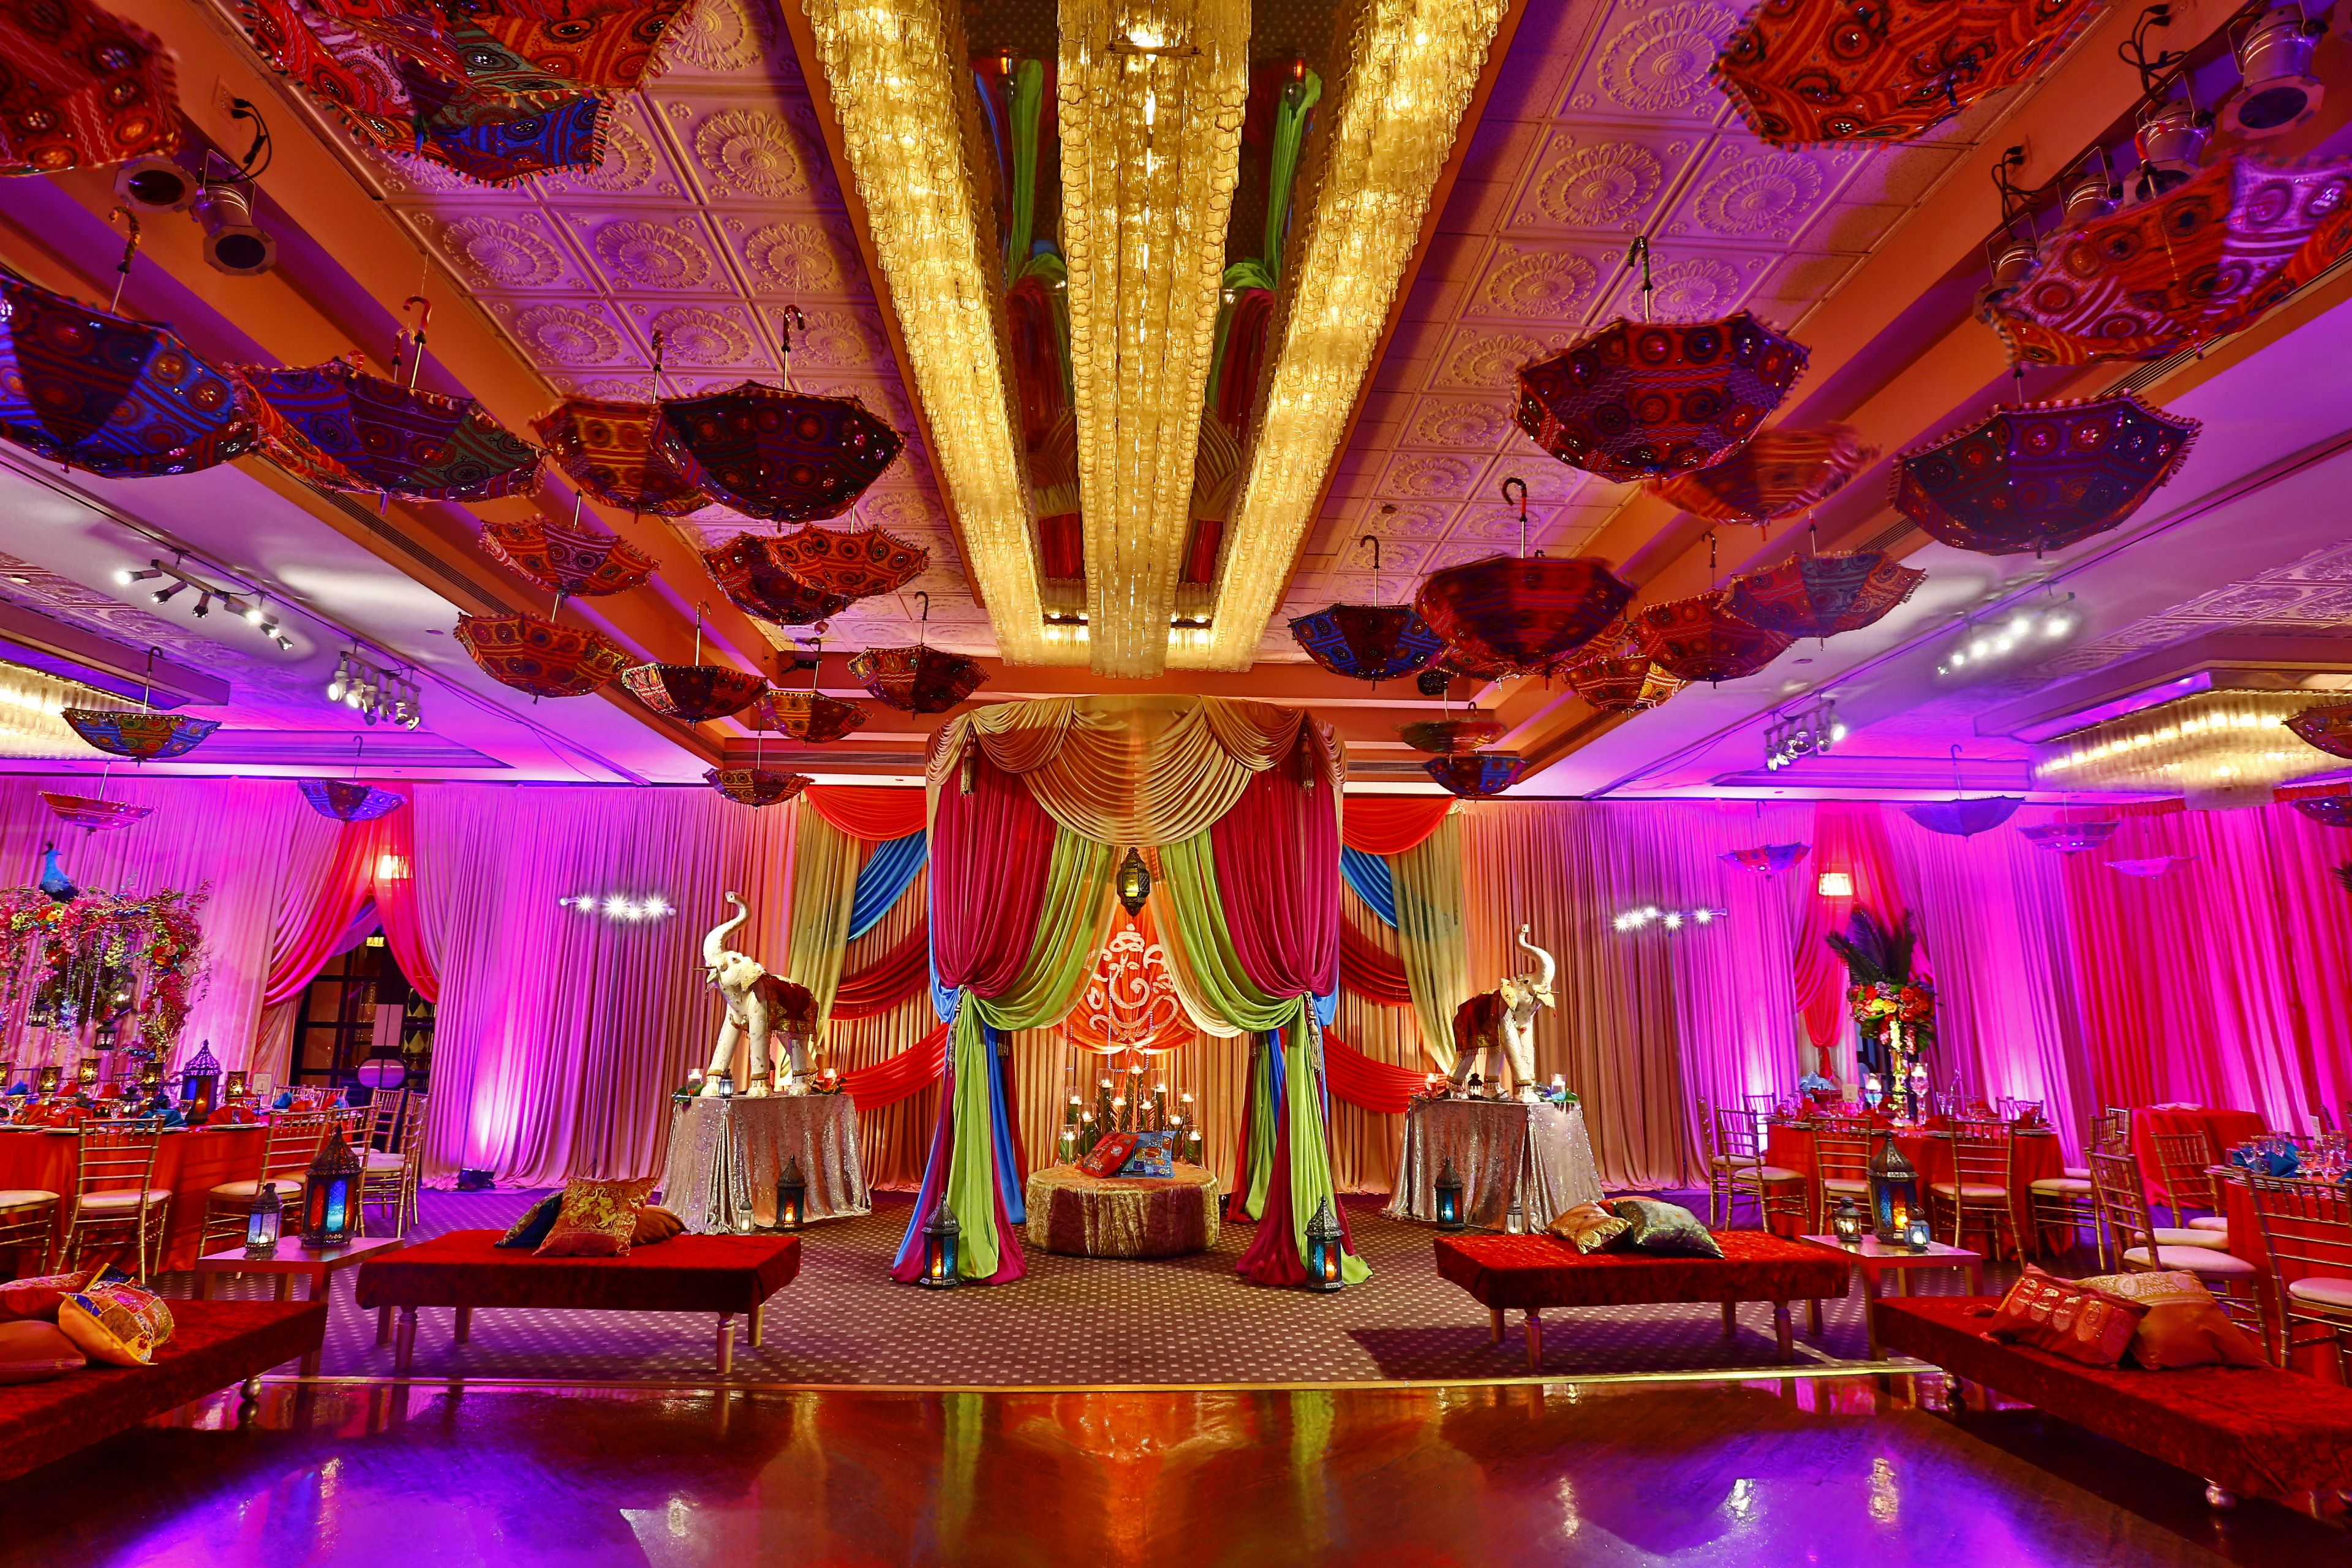 b42f80f98be93 #Exquisite #Indian #wedding #reception #decor featuring #LED #light  fixtures, #colorful #drapery with #elephant #centerpieces and #umbrellas